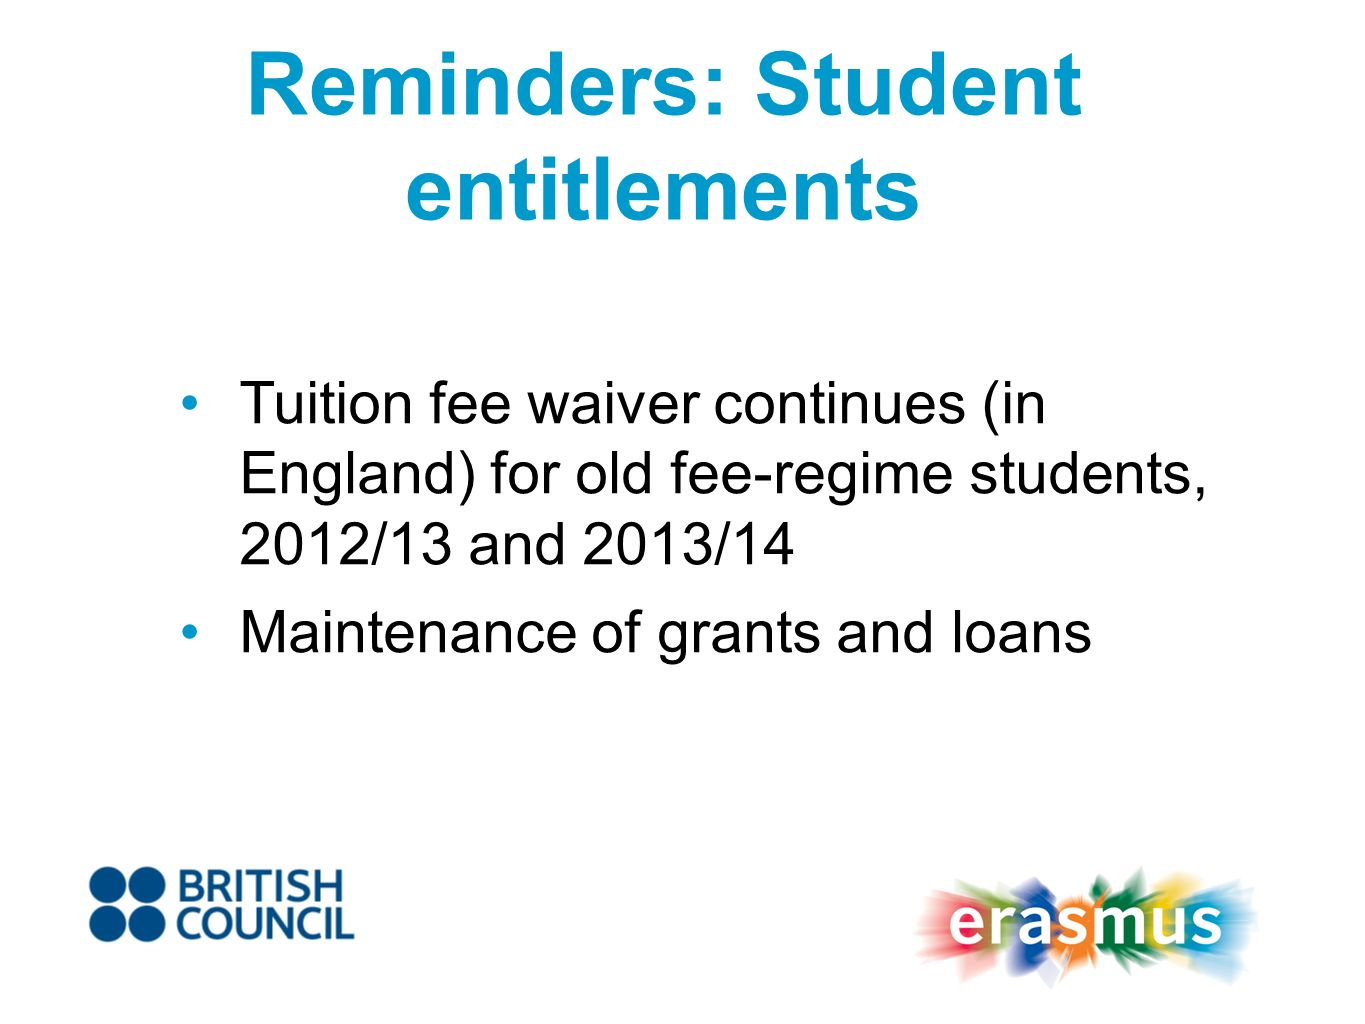 Reminders: Student entitlements Tuition fee waiver continues (in England) for old fee-regime students, 2012/13 and 2013/14 Maintenance of grants and loans